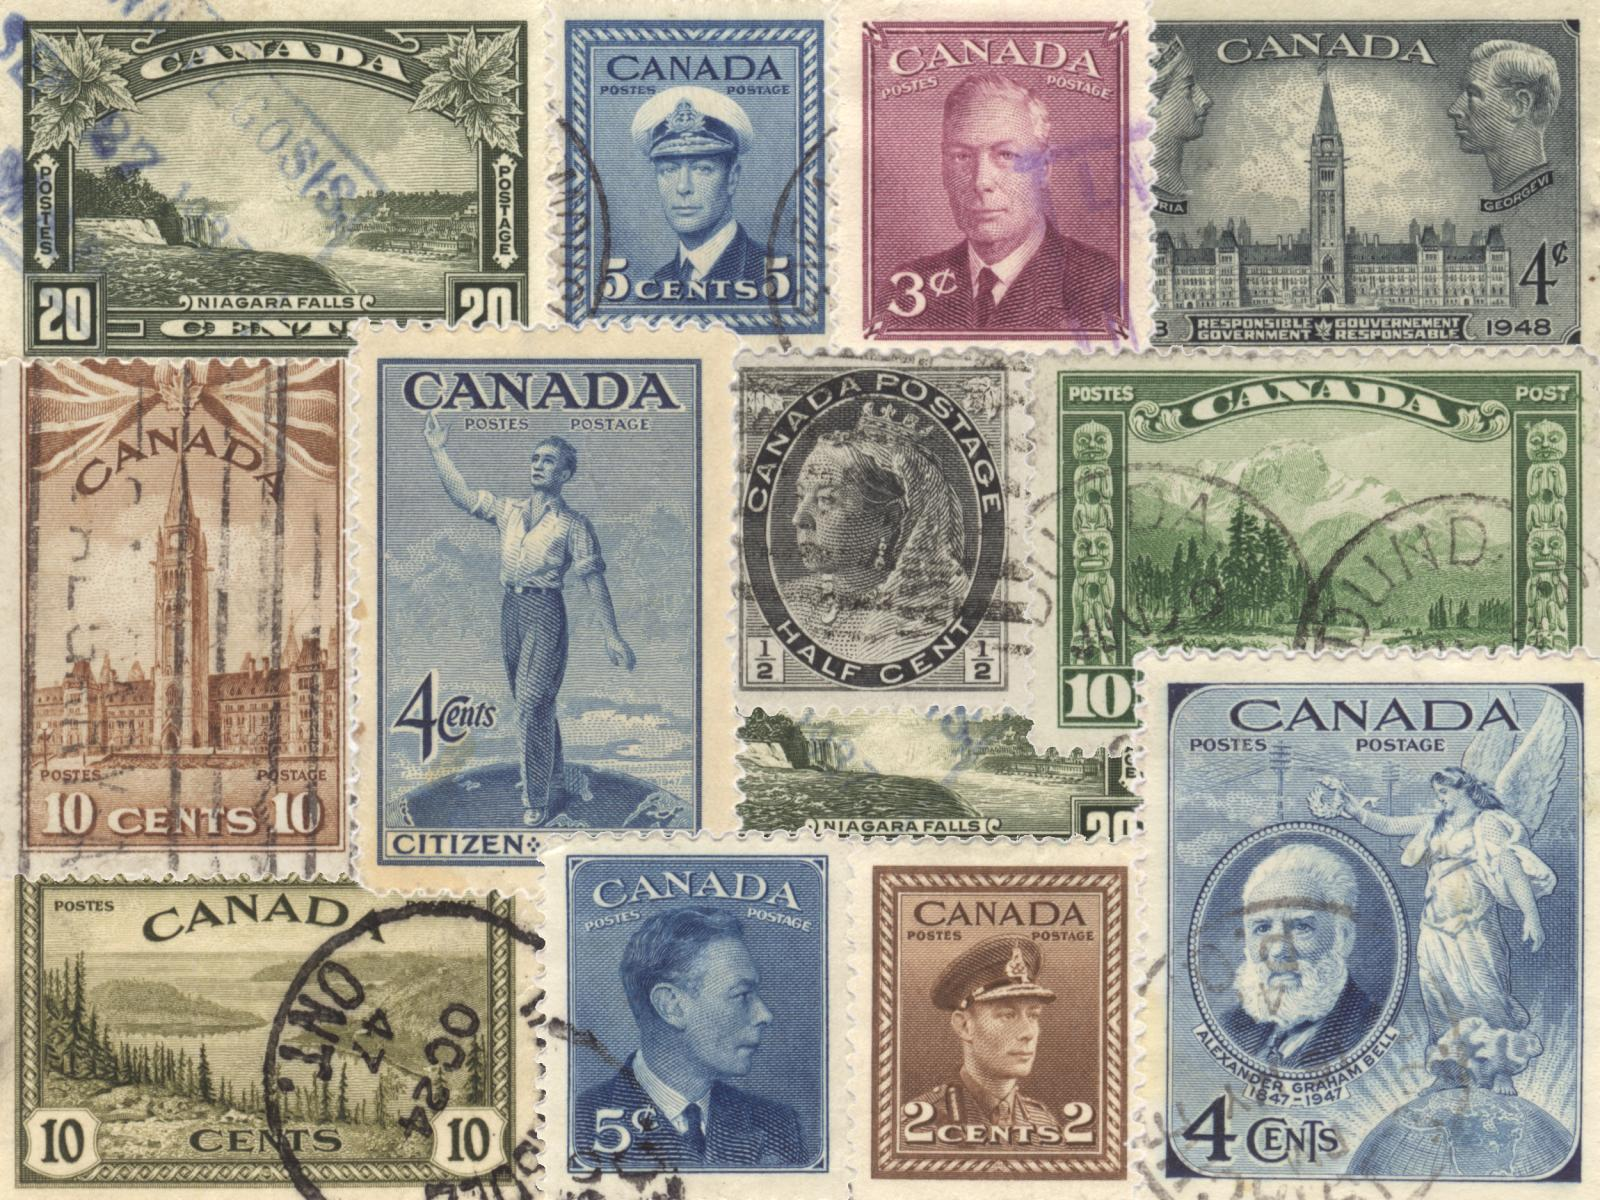 timbres canadiens vintage Wallpaper   ForWallpapercom 1600x1200